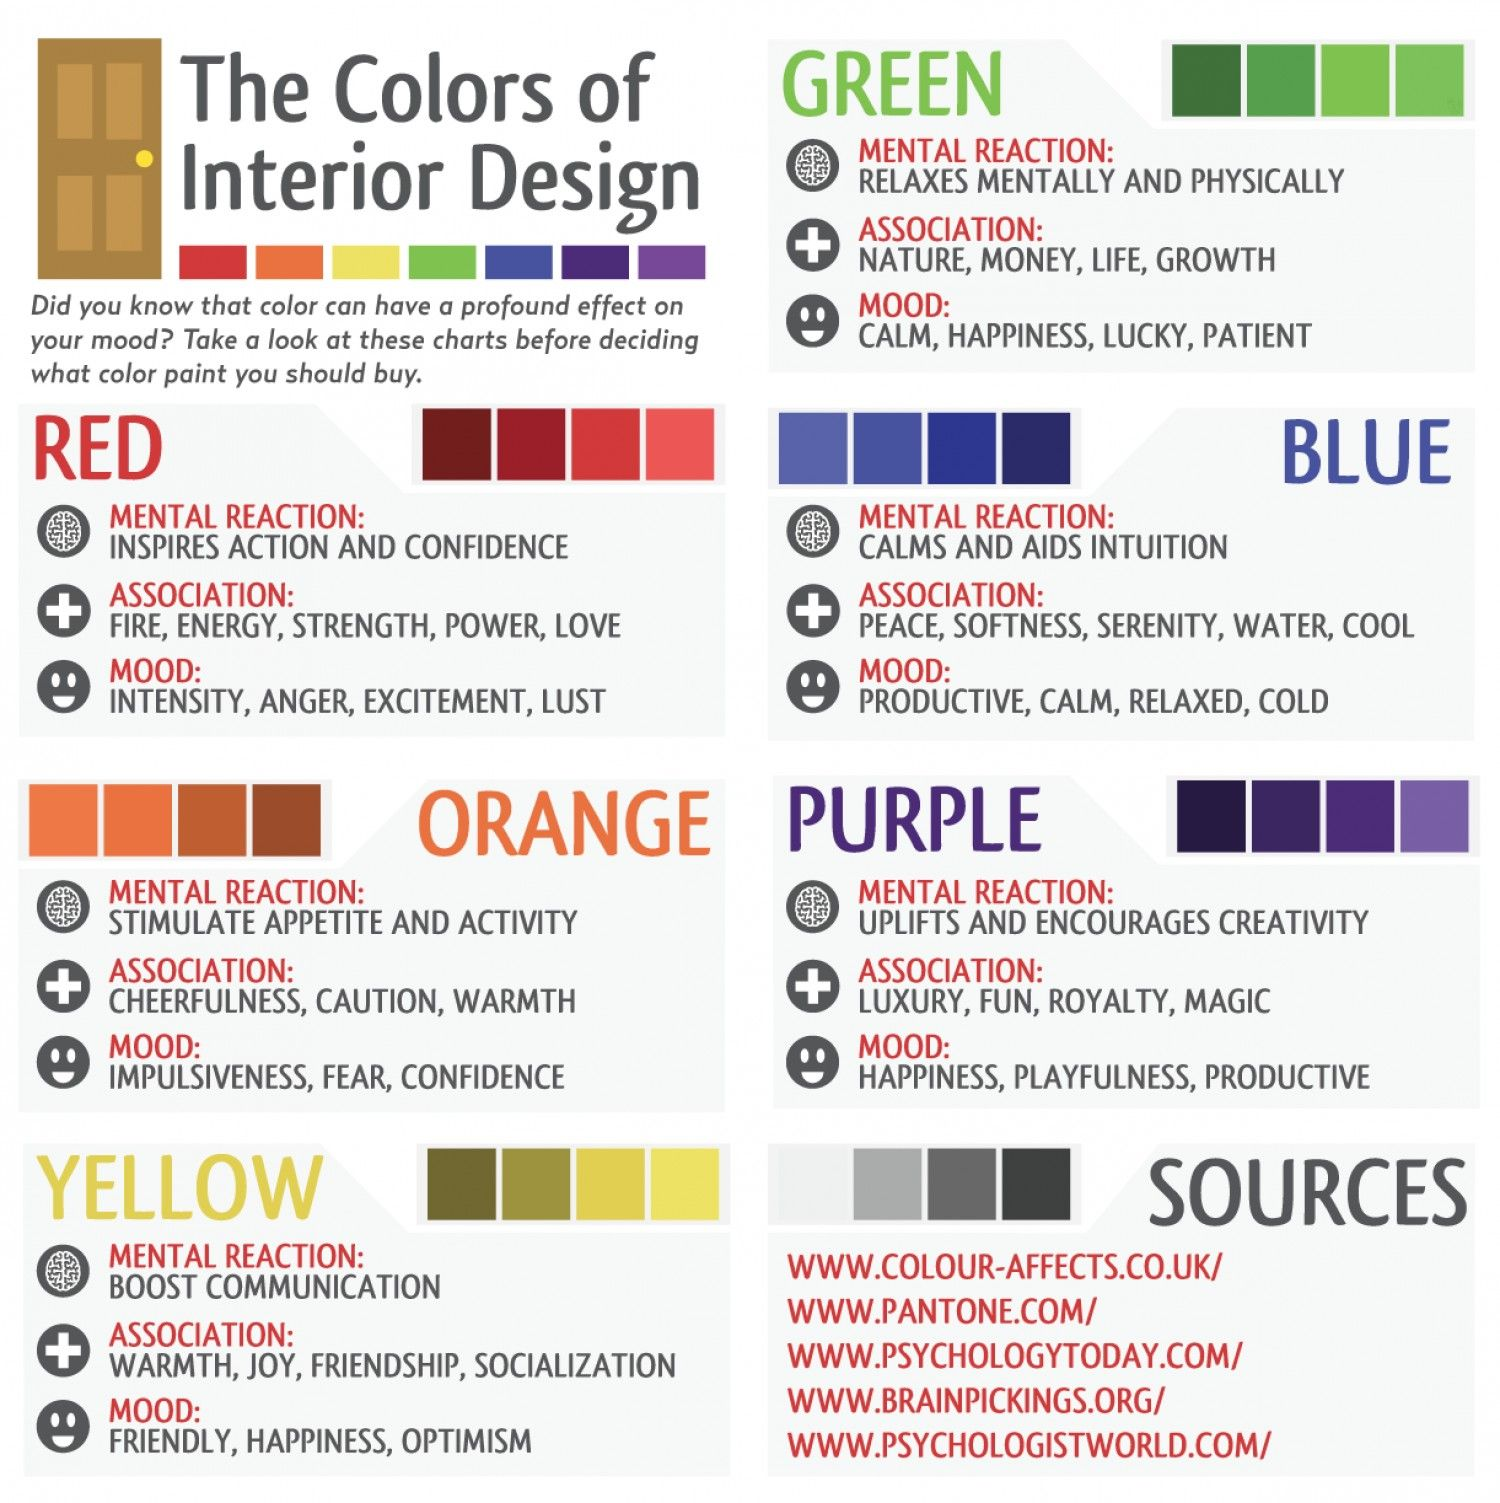 Color Mood Chart For Meditation Room Roomdecor Diyroomdecor Color Mood Chart Color Psychology Interior Design Mood Color Meanings